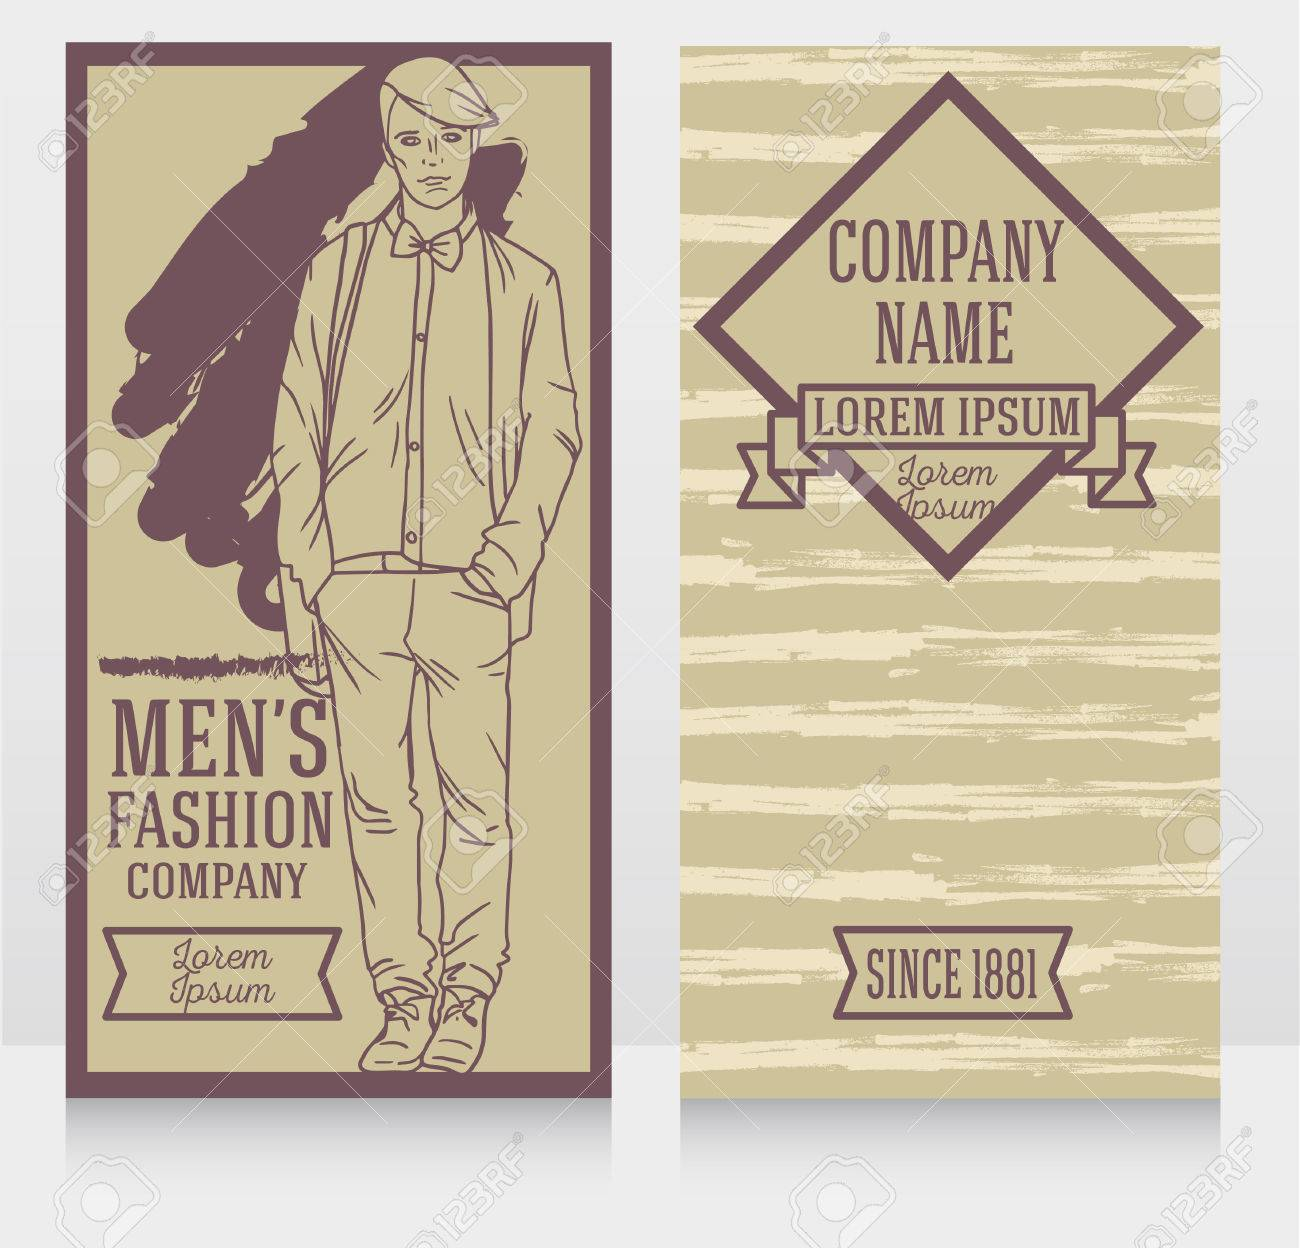 Generous Old Fashioned Business Cards Images - Business Card Ideas ...